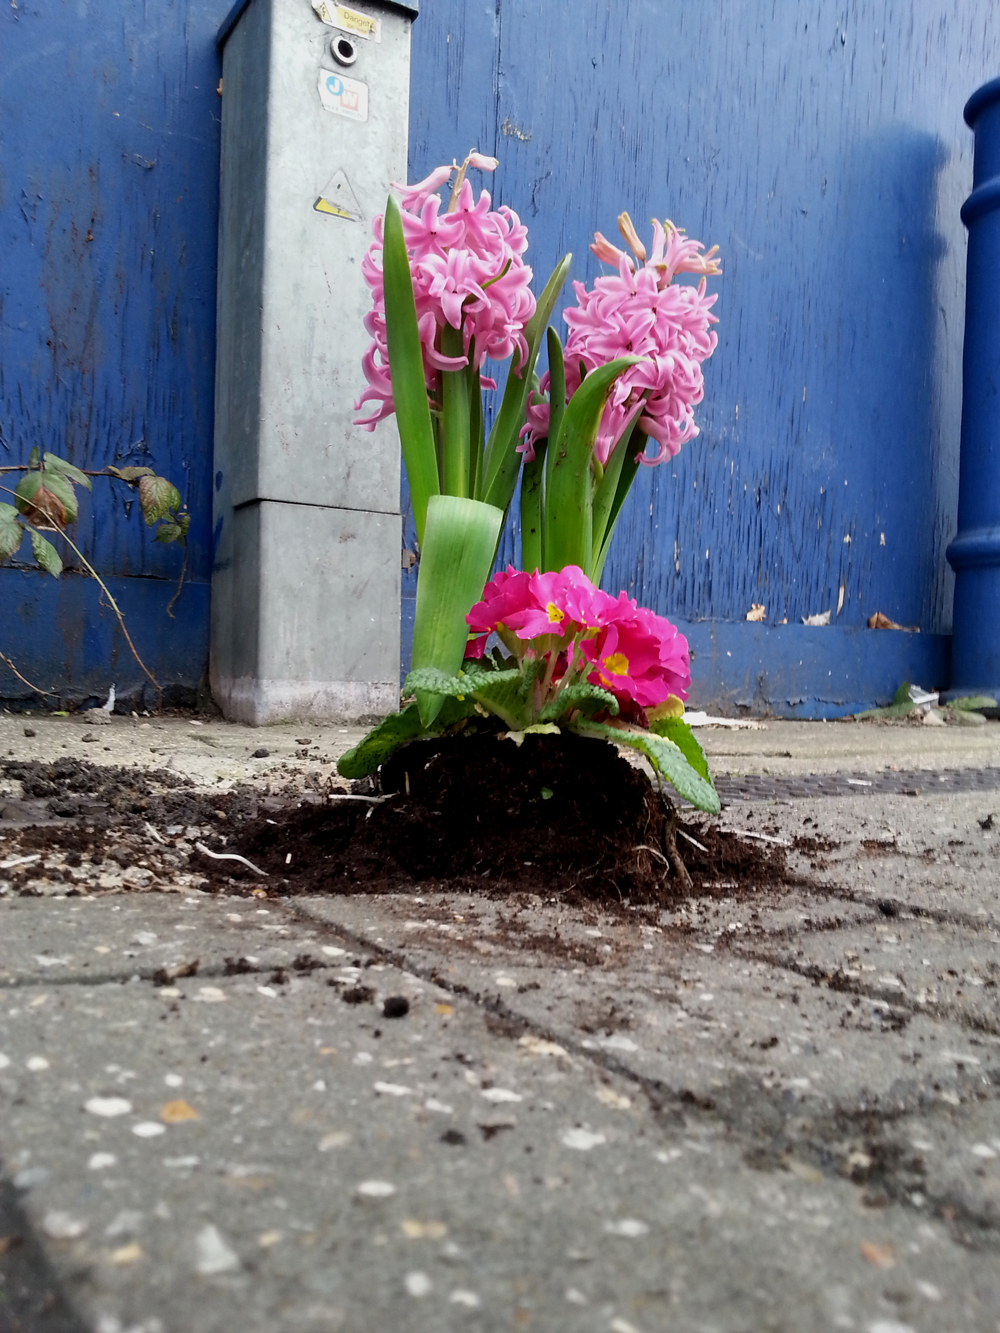 Pothole-Gardener-Valentines-Day-Vauxhall-London